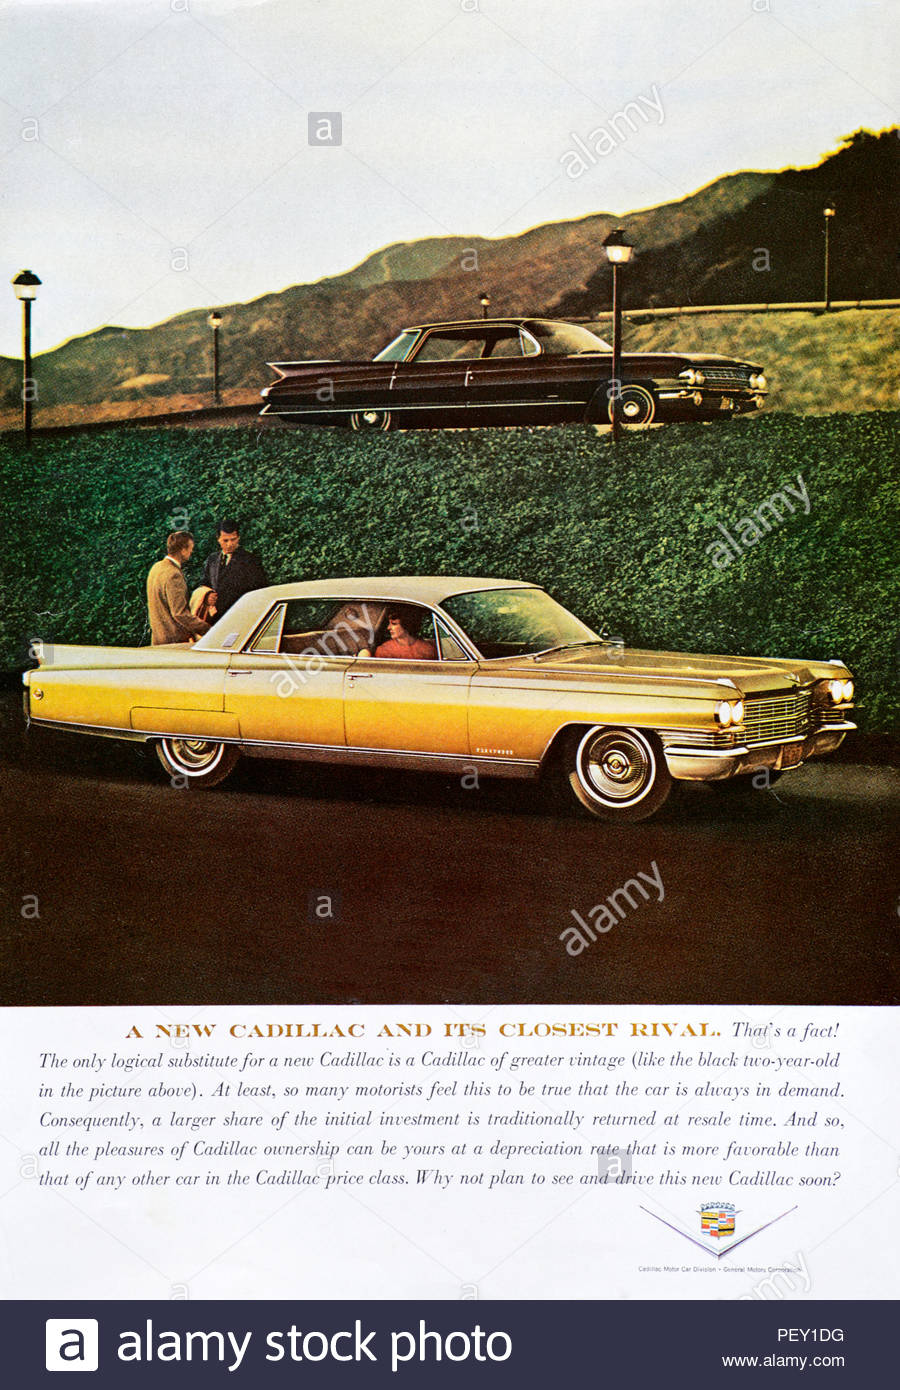 Vintage advertising for the Cadillac Car 1963 - Stock Image